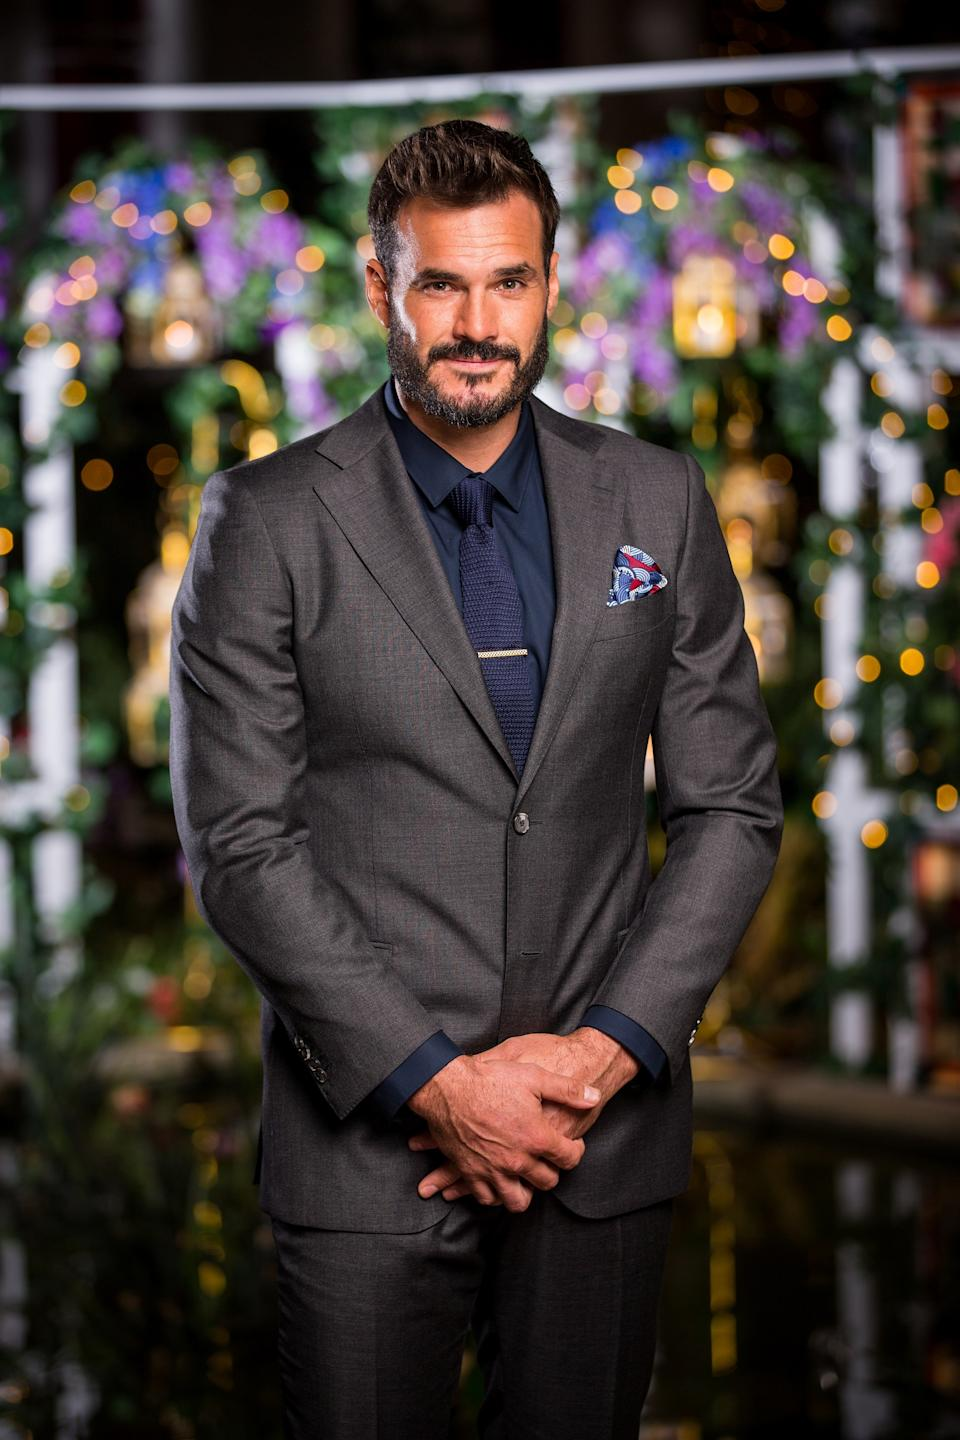 The Bachelor 2020: Locky reportedly paid '$100k' to find love